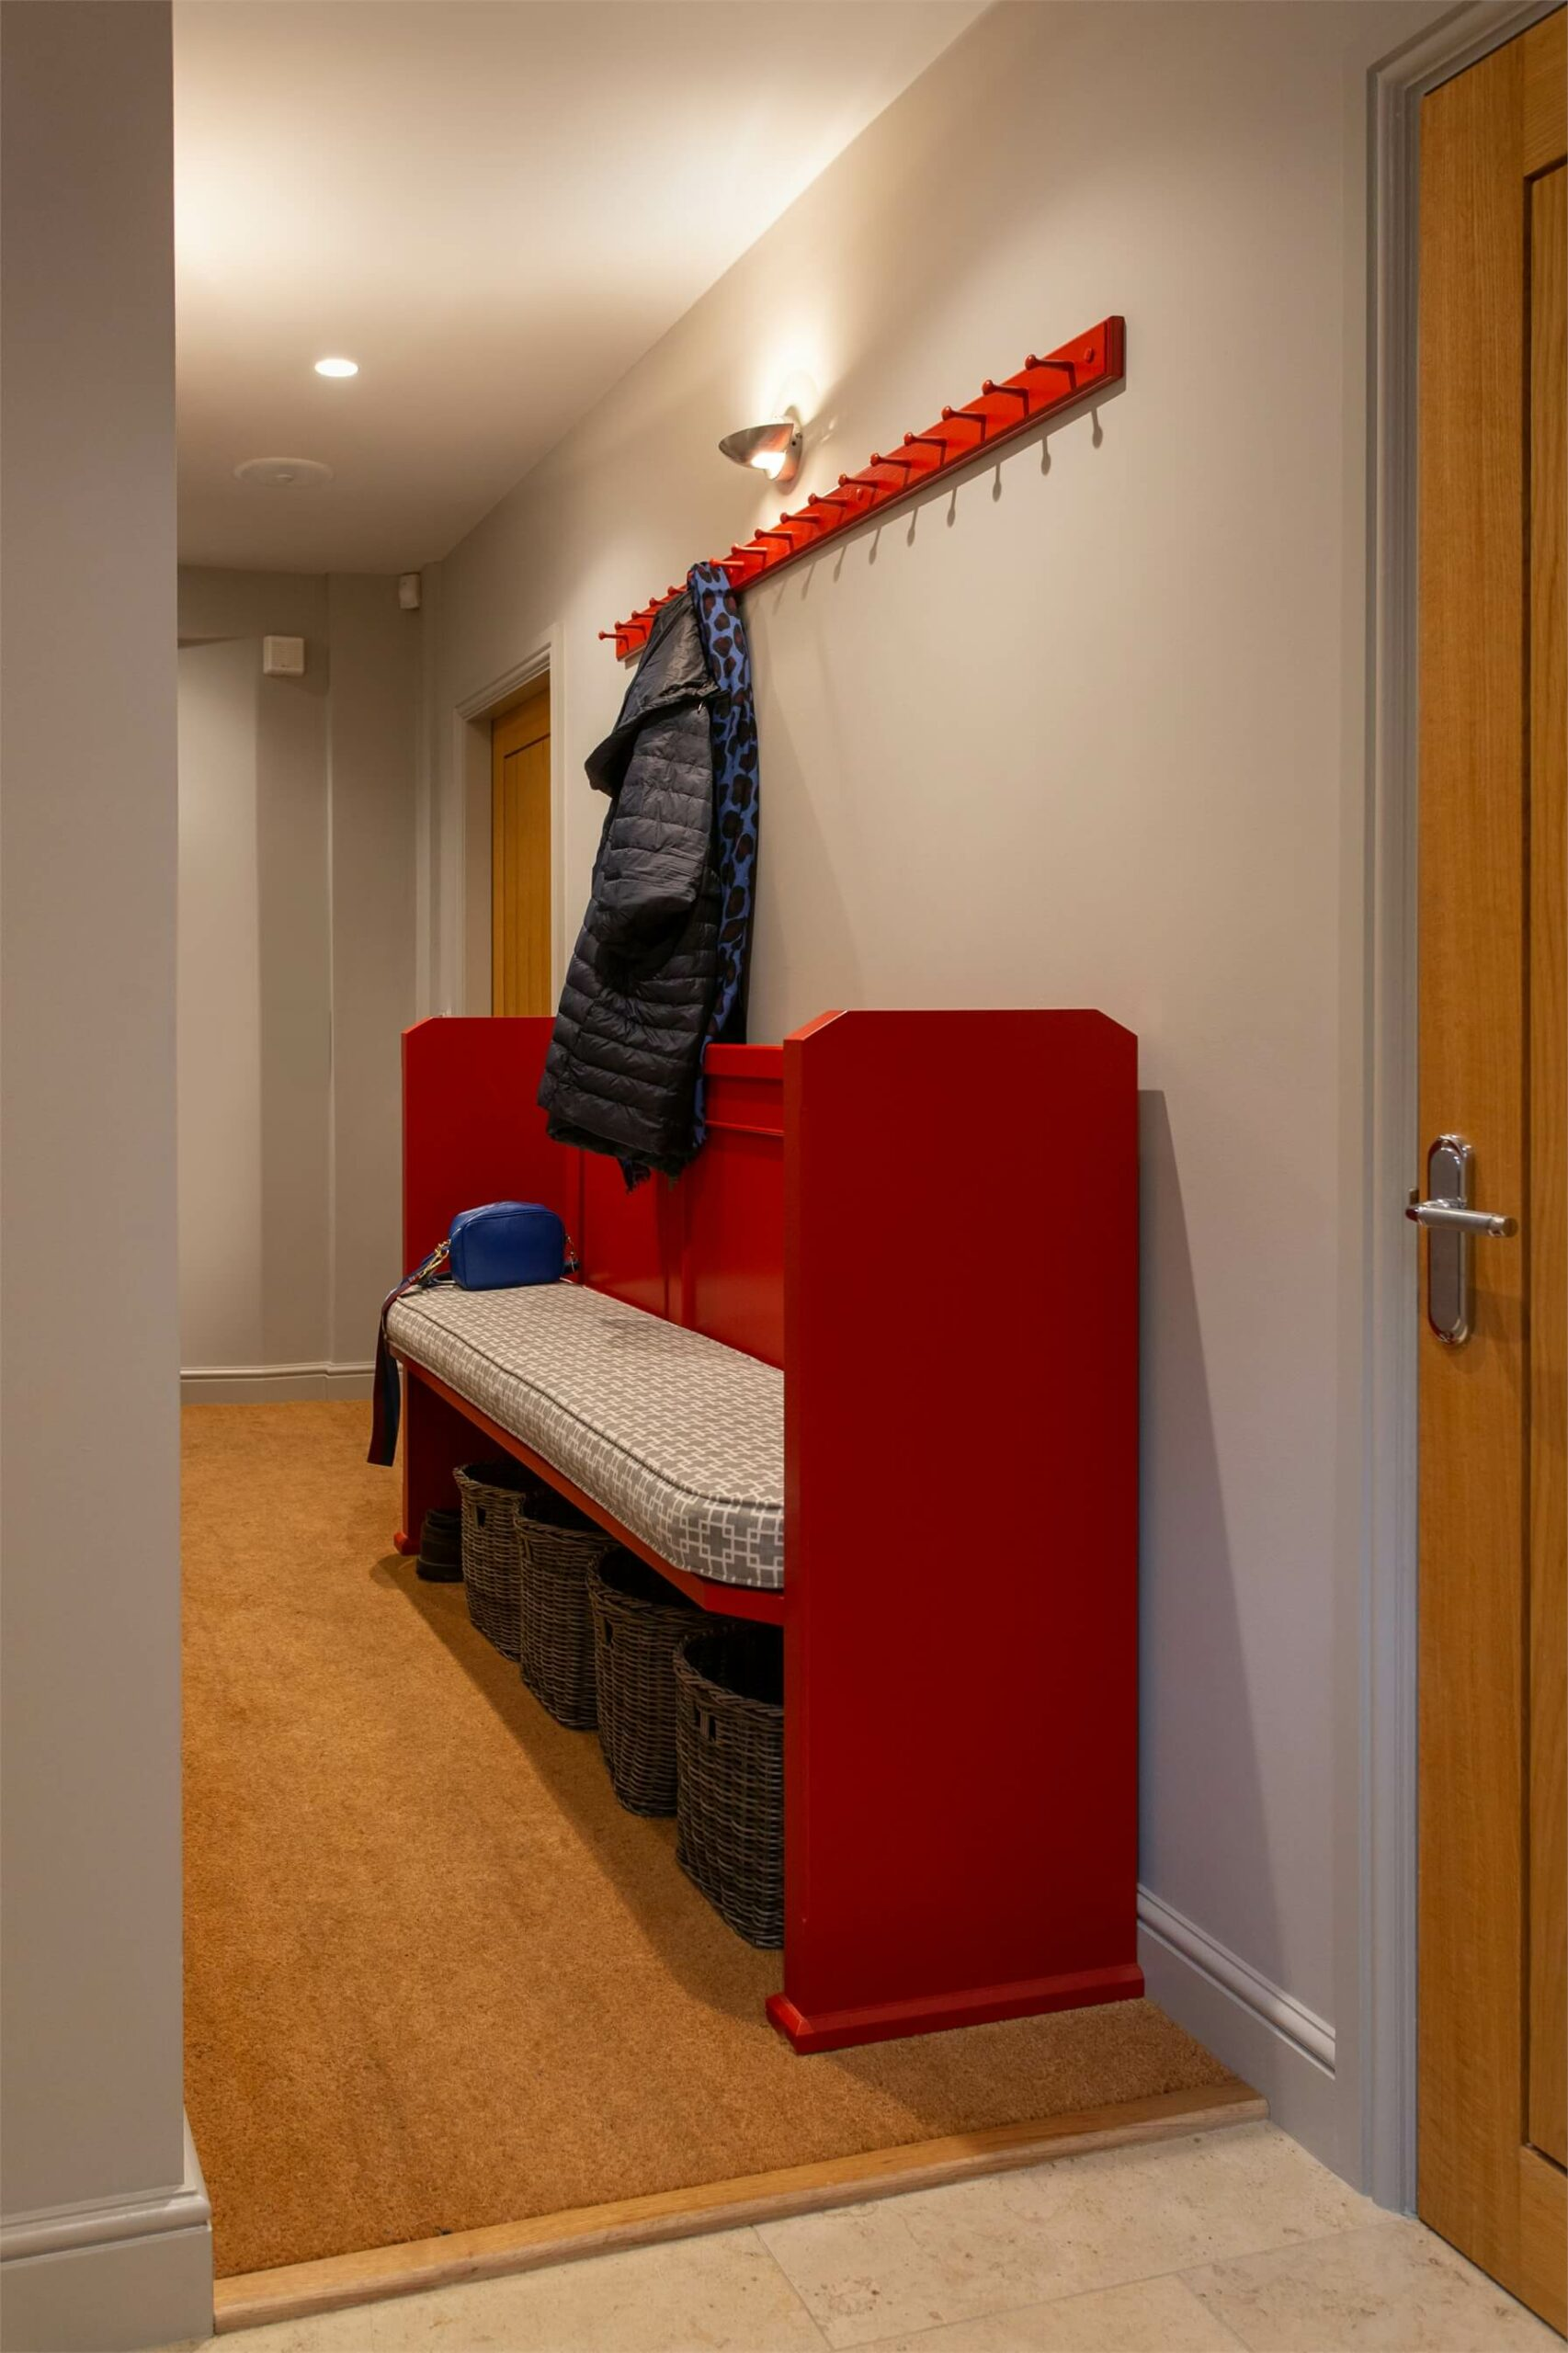 A vibrant red pew is a practical way to add personality and storage to a narrow hallway